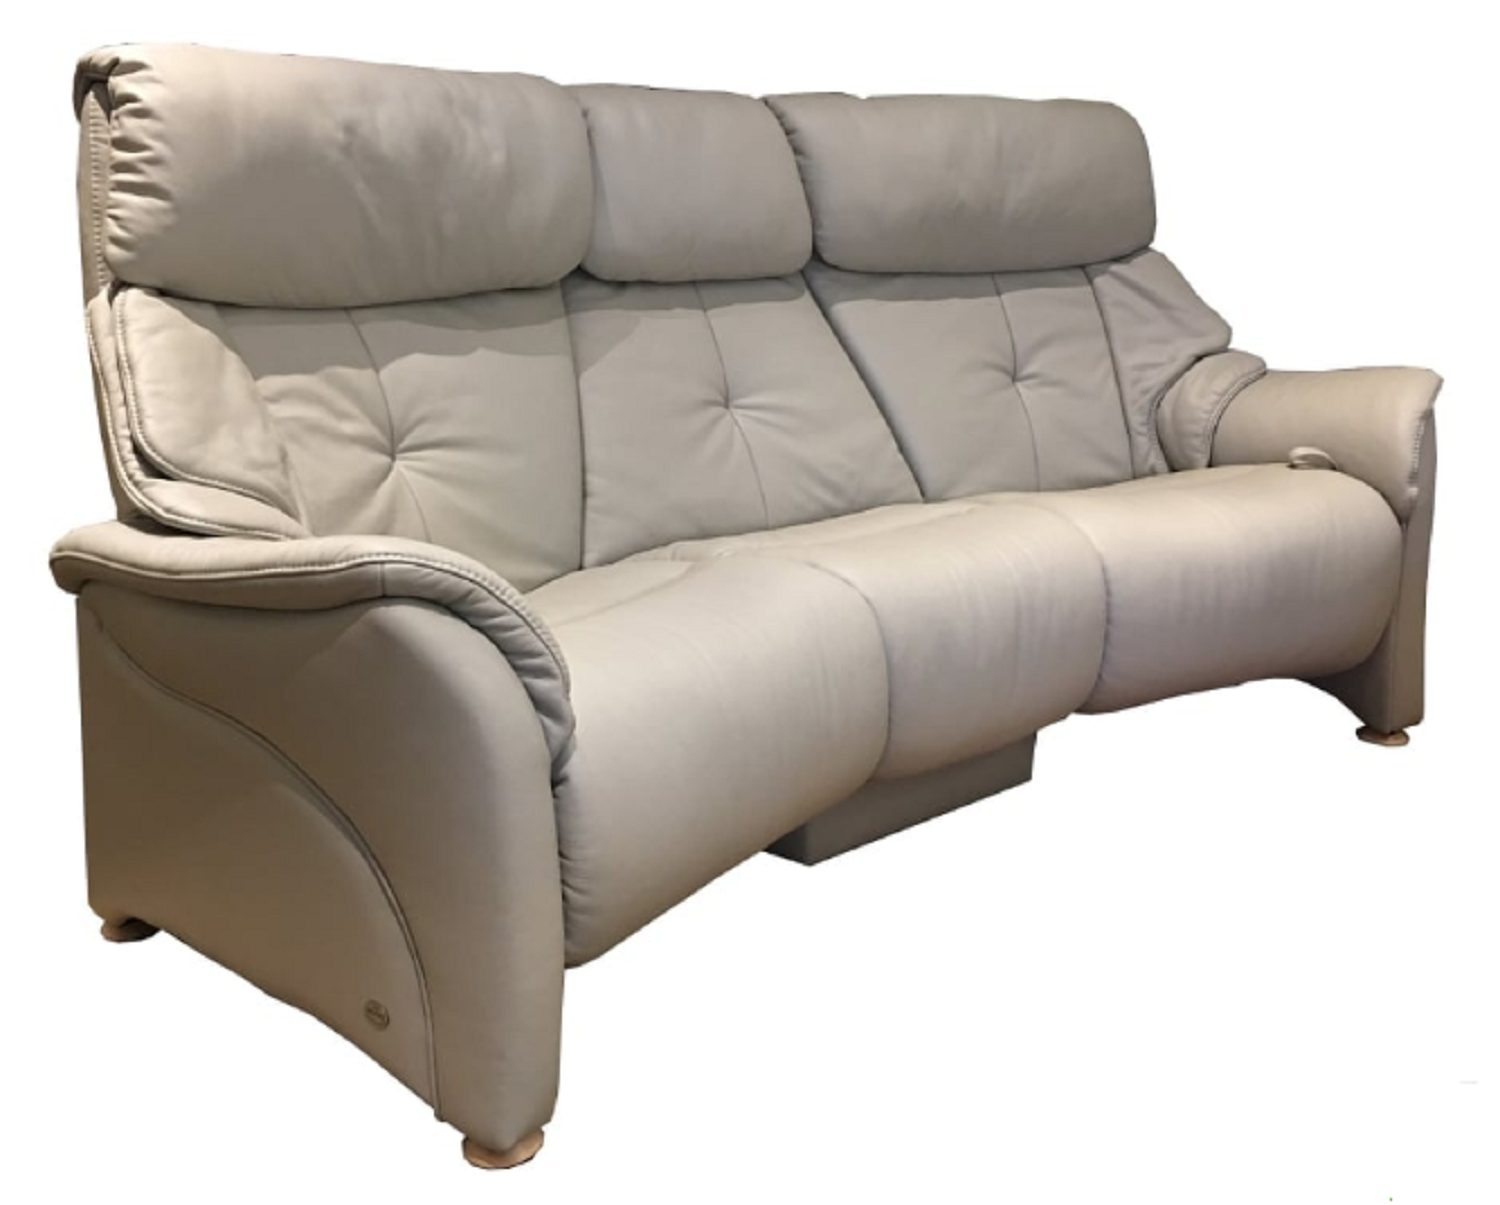 Himolla Chester Trapezodial 3 Seater Reclining Sofa With Tiltable Table 4246 Sofas Hafren Furnishers